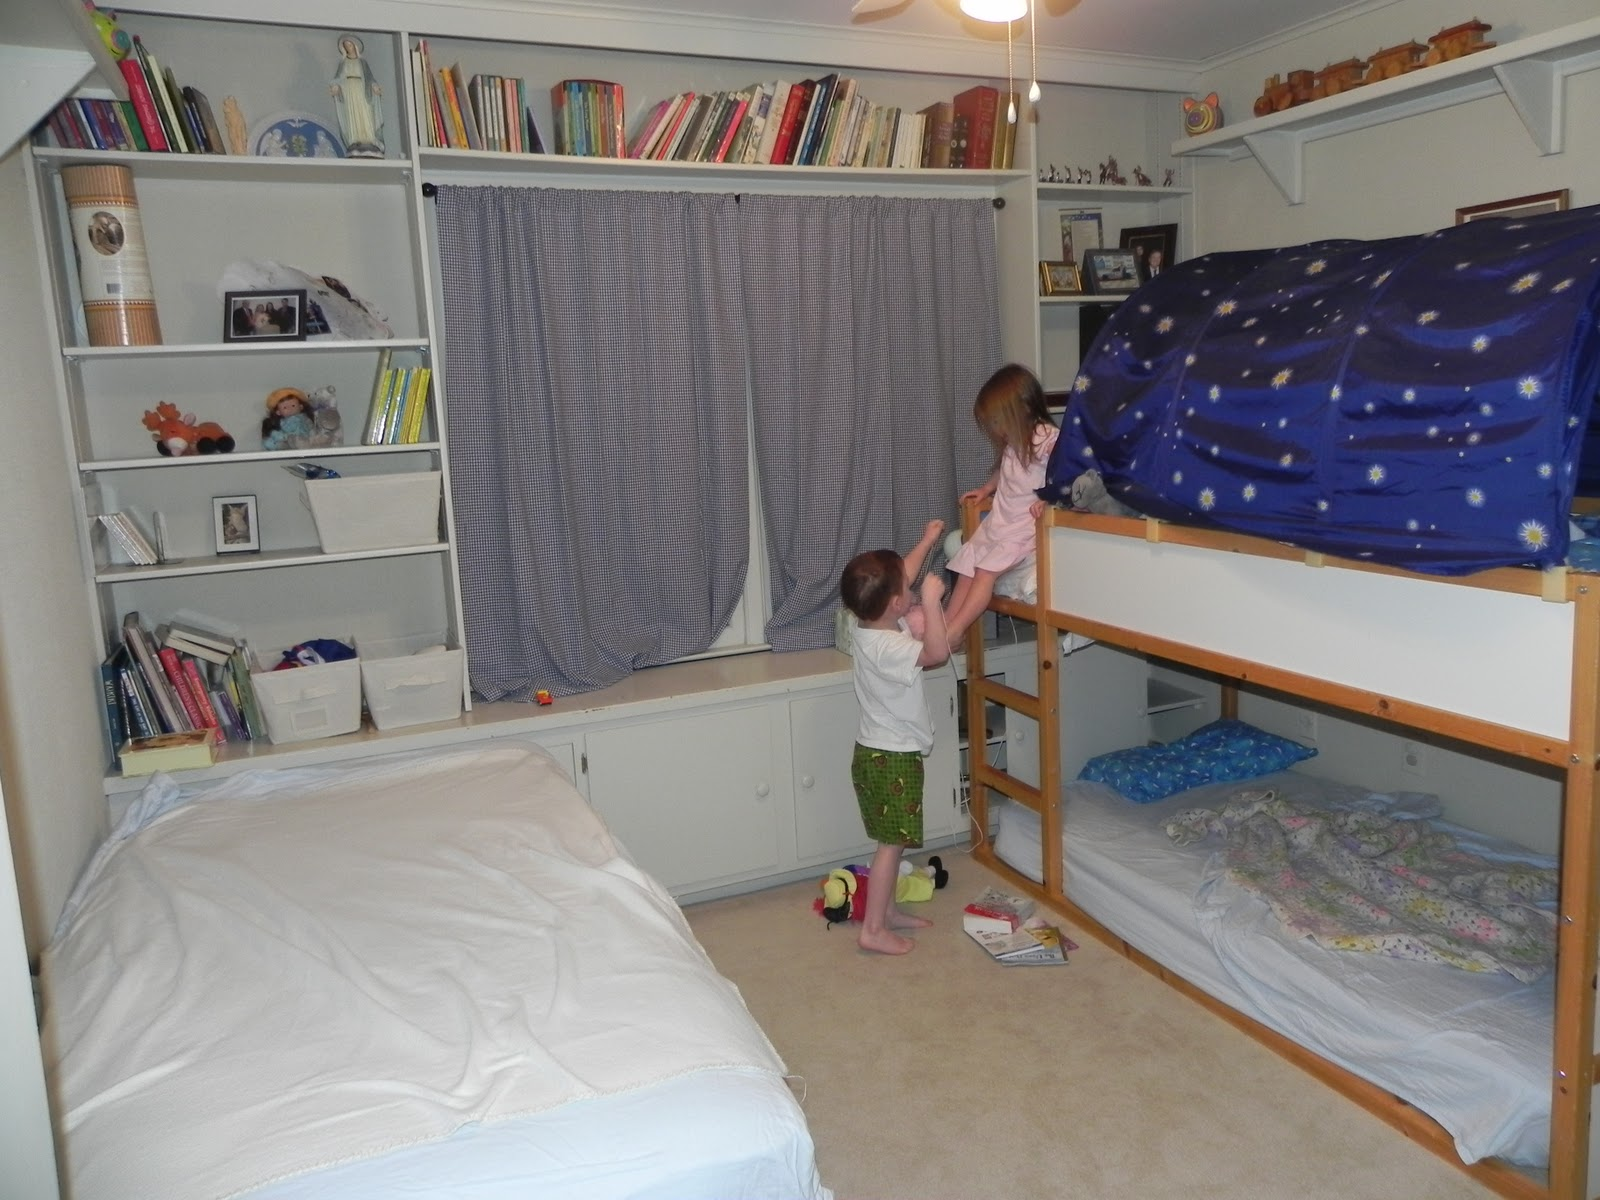 Gloria in Excelsis Deo: Unexpected New Bunk Bed